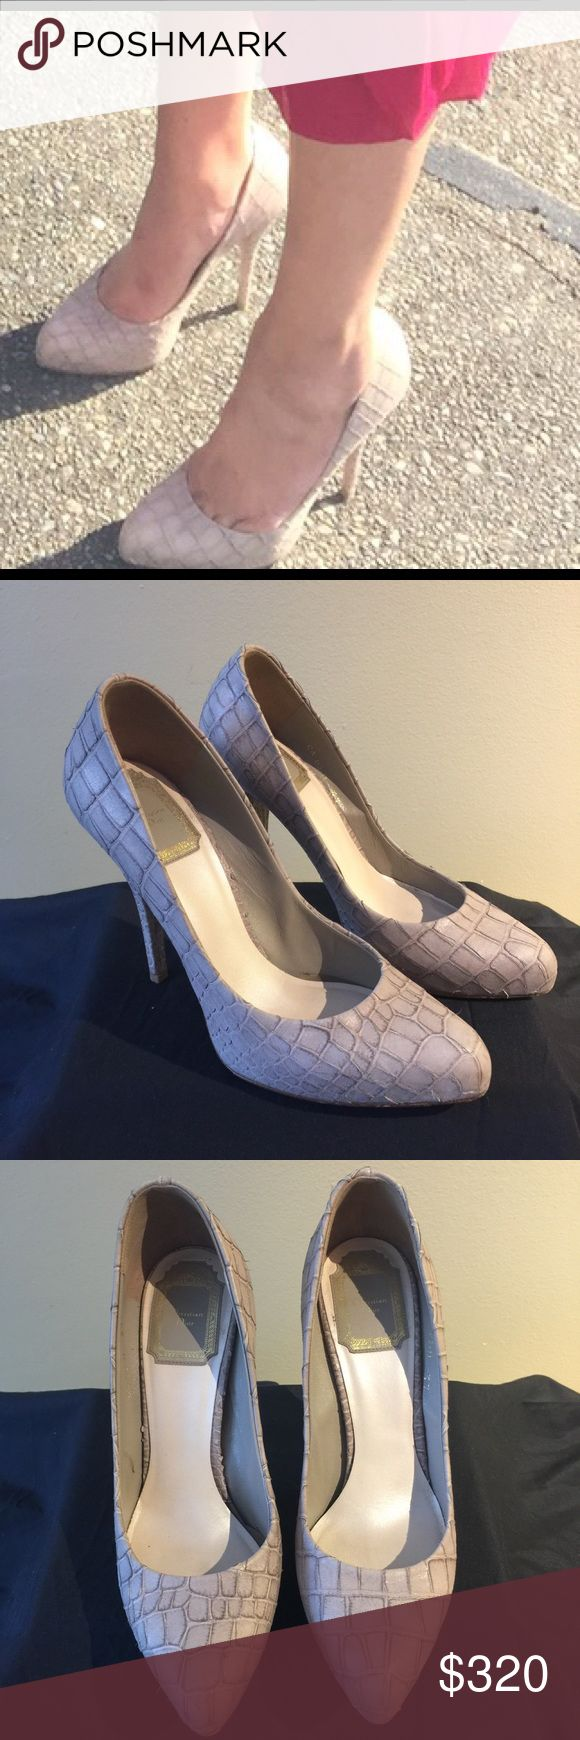 Christian Dior Snakeskin Heels Very sexy Christian Dior Beige Embossed Snakeskin Heels, 4.5 inch heel, Minor Wear, small knick in right heel that can be repaired through Nordstrom, Neiman Marcus or your trusted shoe repair. No dust bag. Christian Dior Shoes Heels